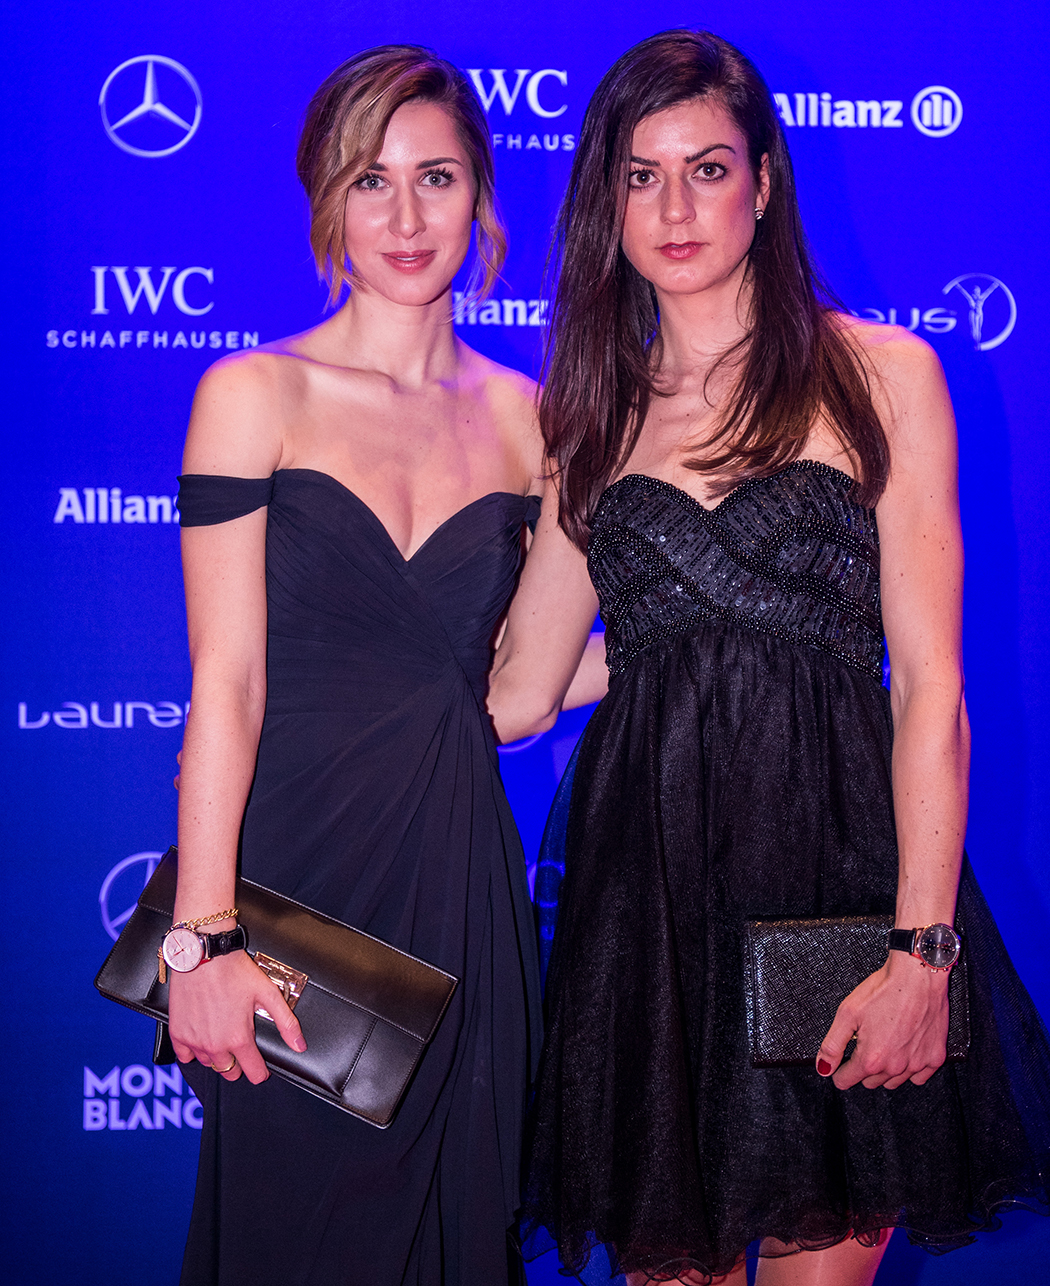 MONTE CARLO, MONACO - FEBRUARY 14: Nadine Rieder, AMG Rotwild MTB Racing Team, and Linda Mutschlechner, fitness influencer, attend the 2017 Laureus World Sports Awards at the Salle des Etoiles, Sporting Monte Carlo on February 14, 2017 in Monaco, Monaco. The most outstanding athletes of the past year were honoured at the Laureus World Sports Awards 2017. (Photo by Lukas Schulze/IWC Schaffhausen via Getty Images )